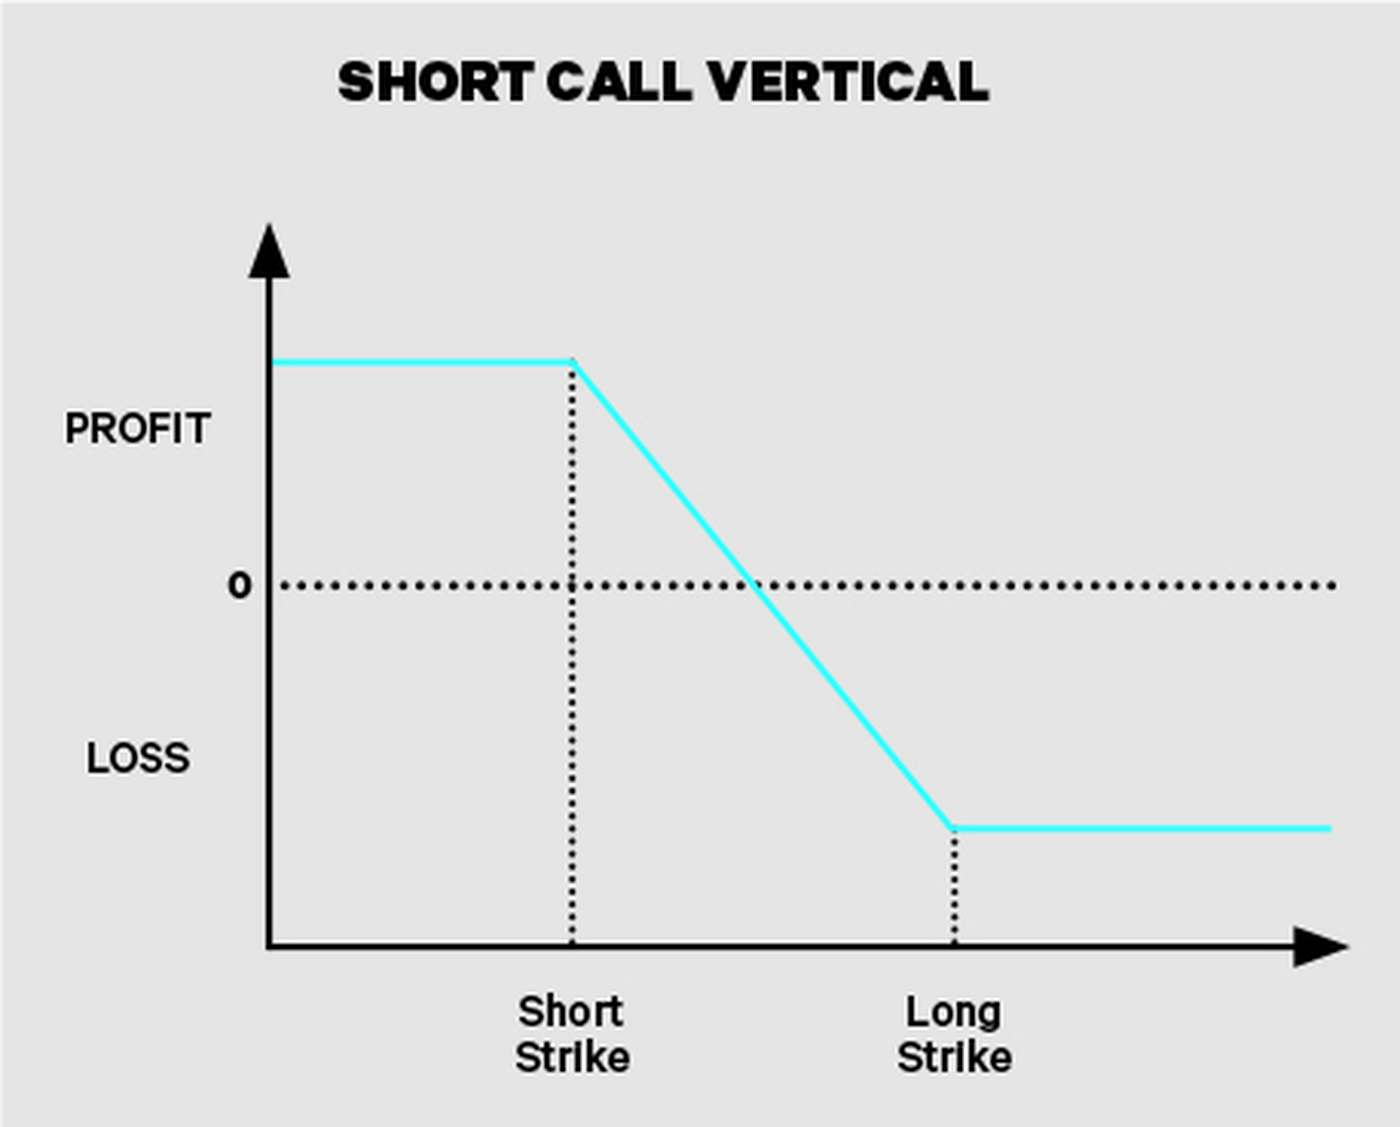 Short call verticals for IRA